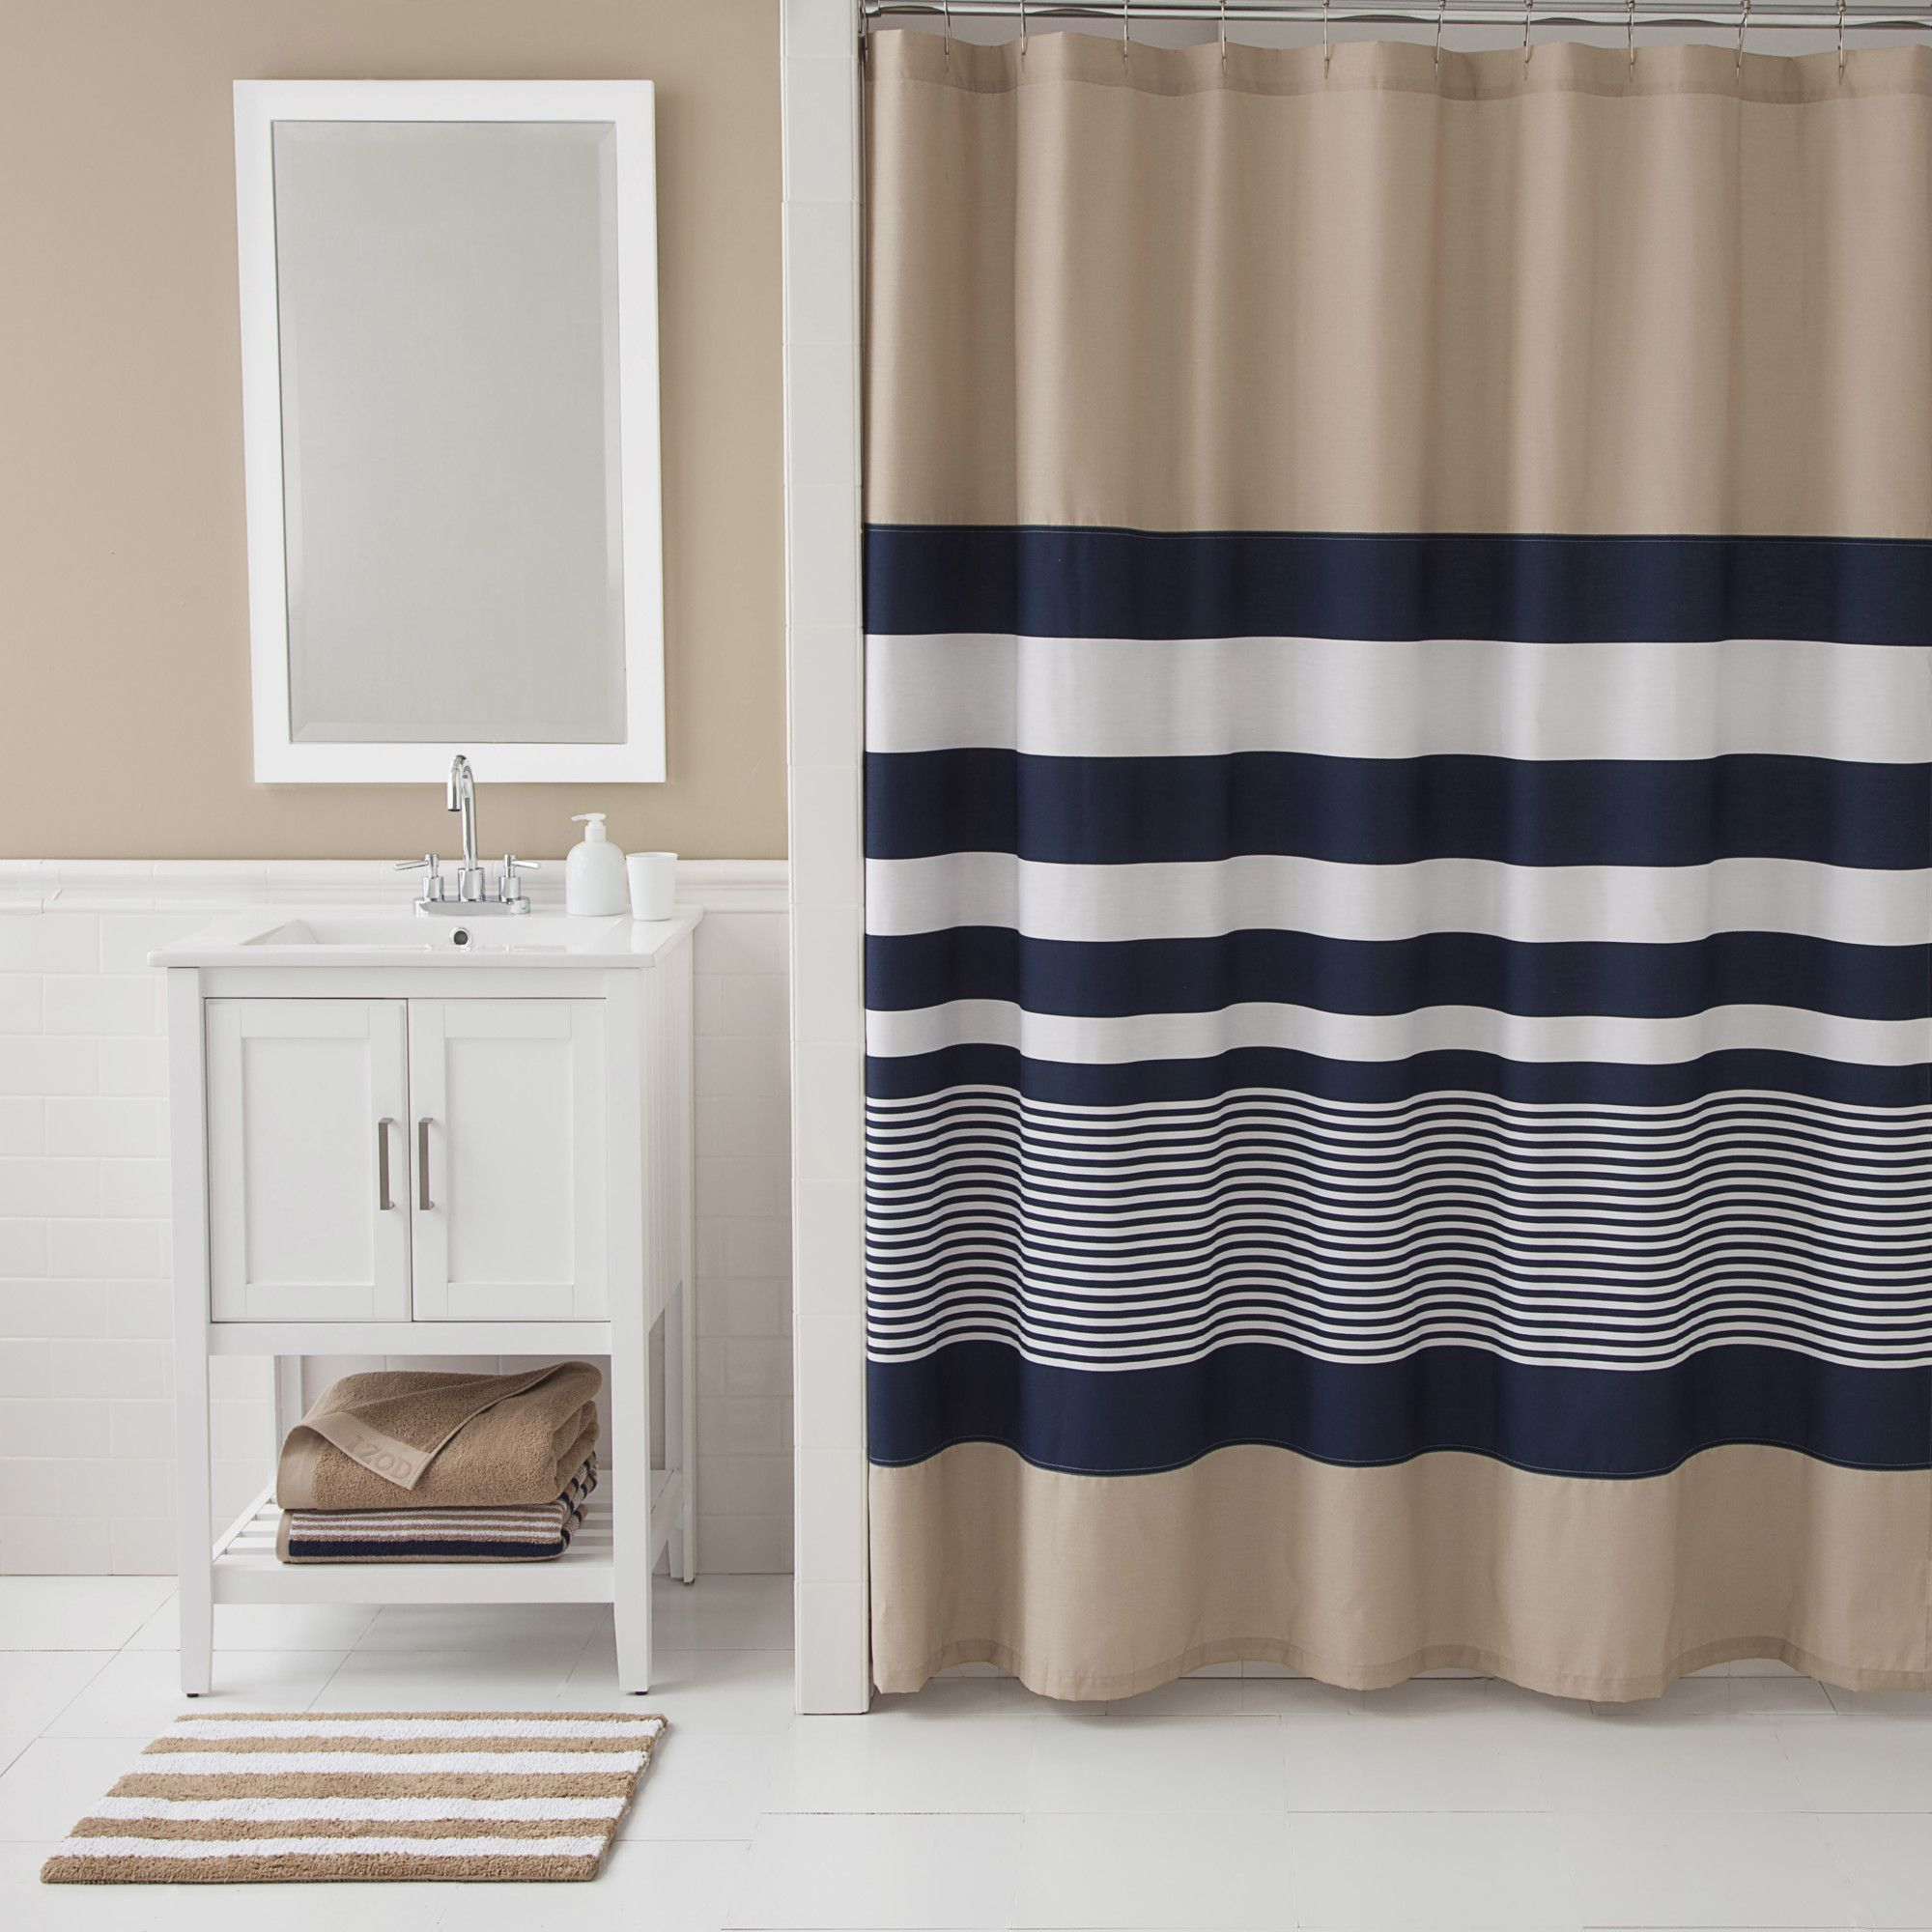 1de5d4d0e58 Add contemporary color blocking to your bath with IZOD s Classic Stripe  Shower Curtain. The bold cotton-blend curtain features navy and white  contrasting ...